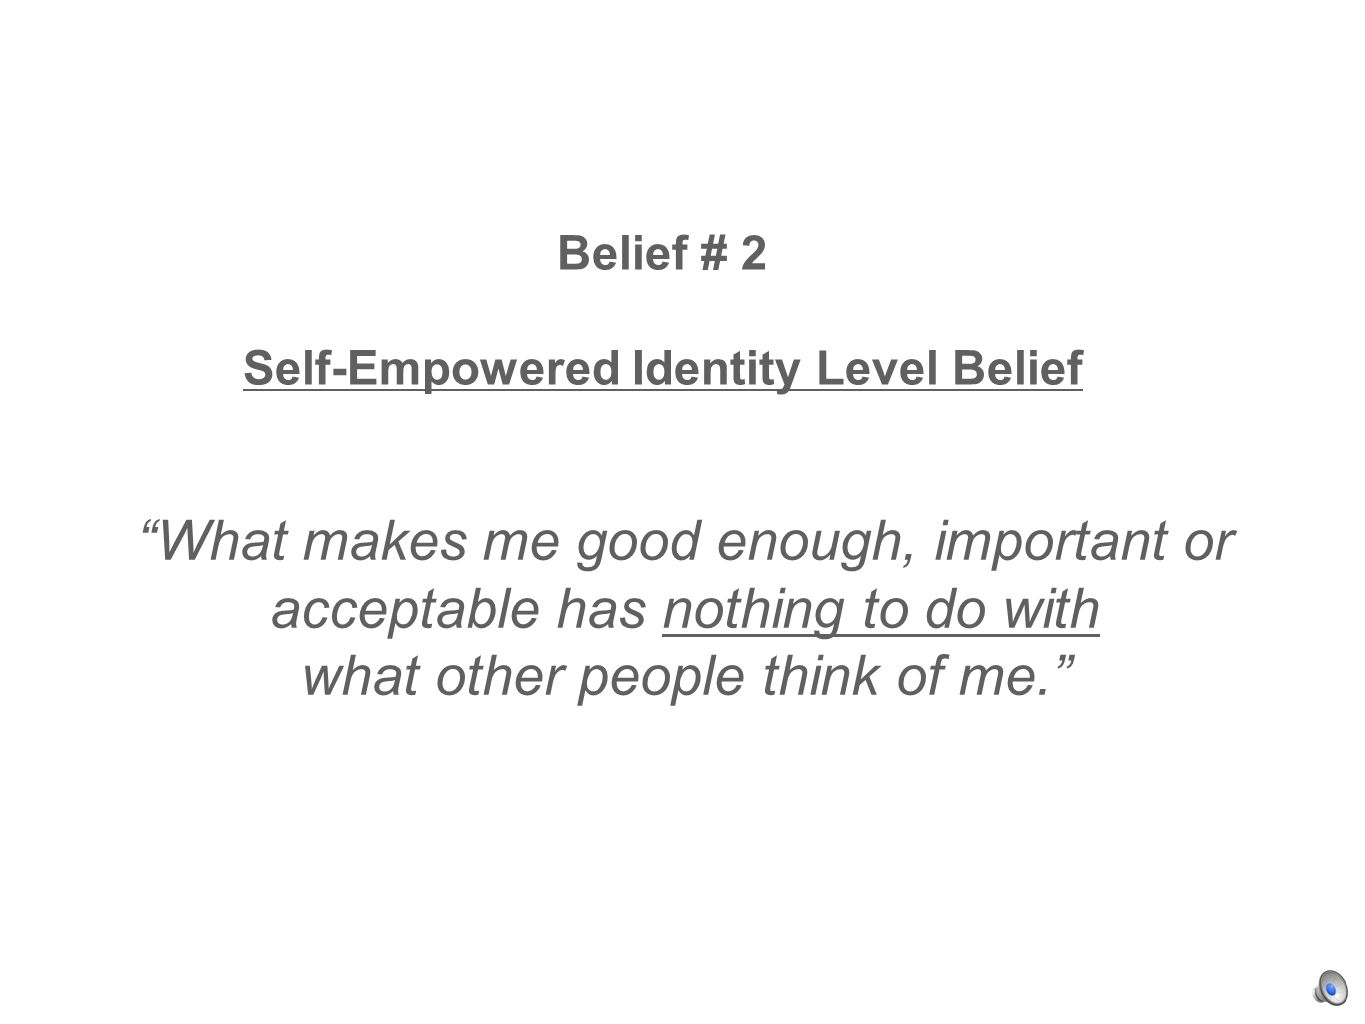 Belief # 2 Self-Empowered Identity Level Belief What makes me good enough, important or acceptable has nothing to do with what other people think of me.